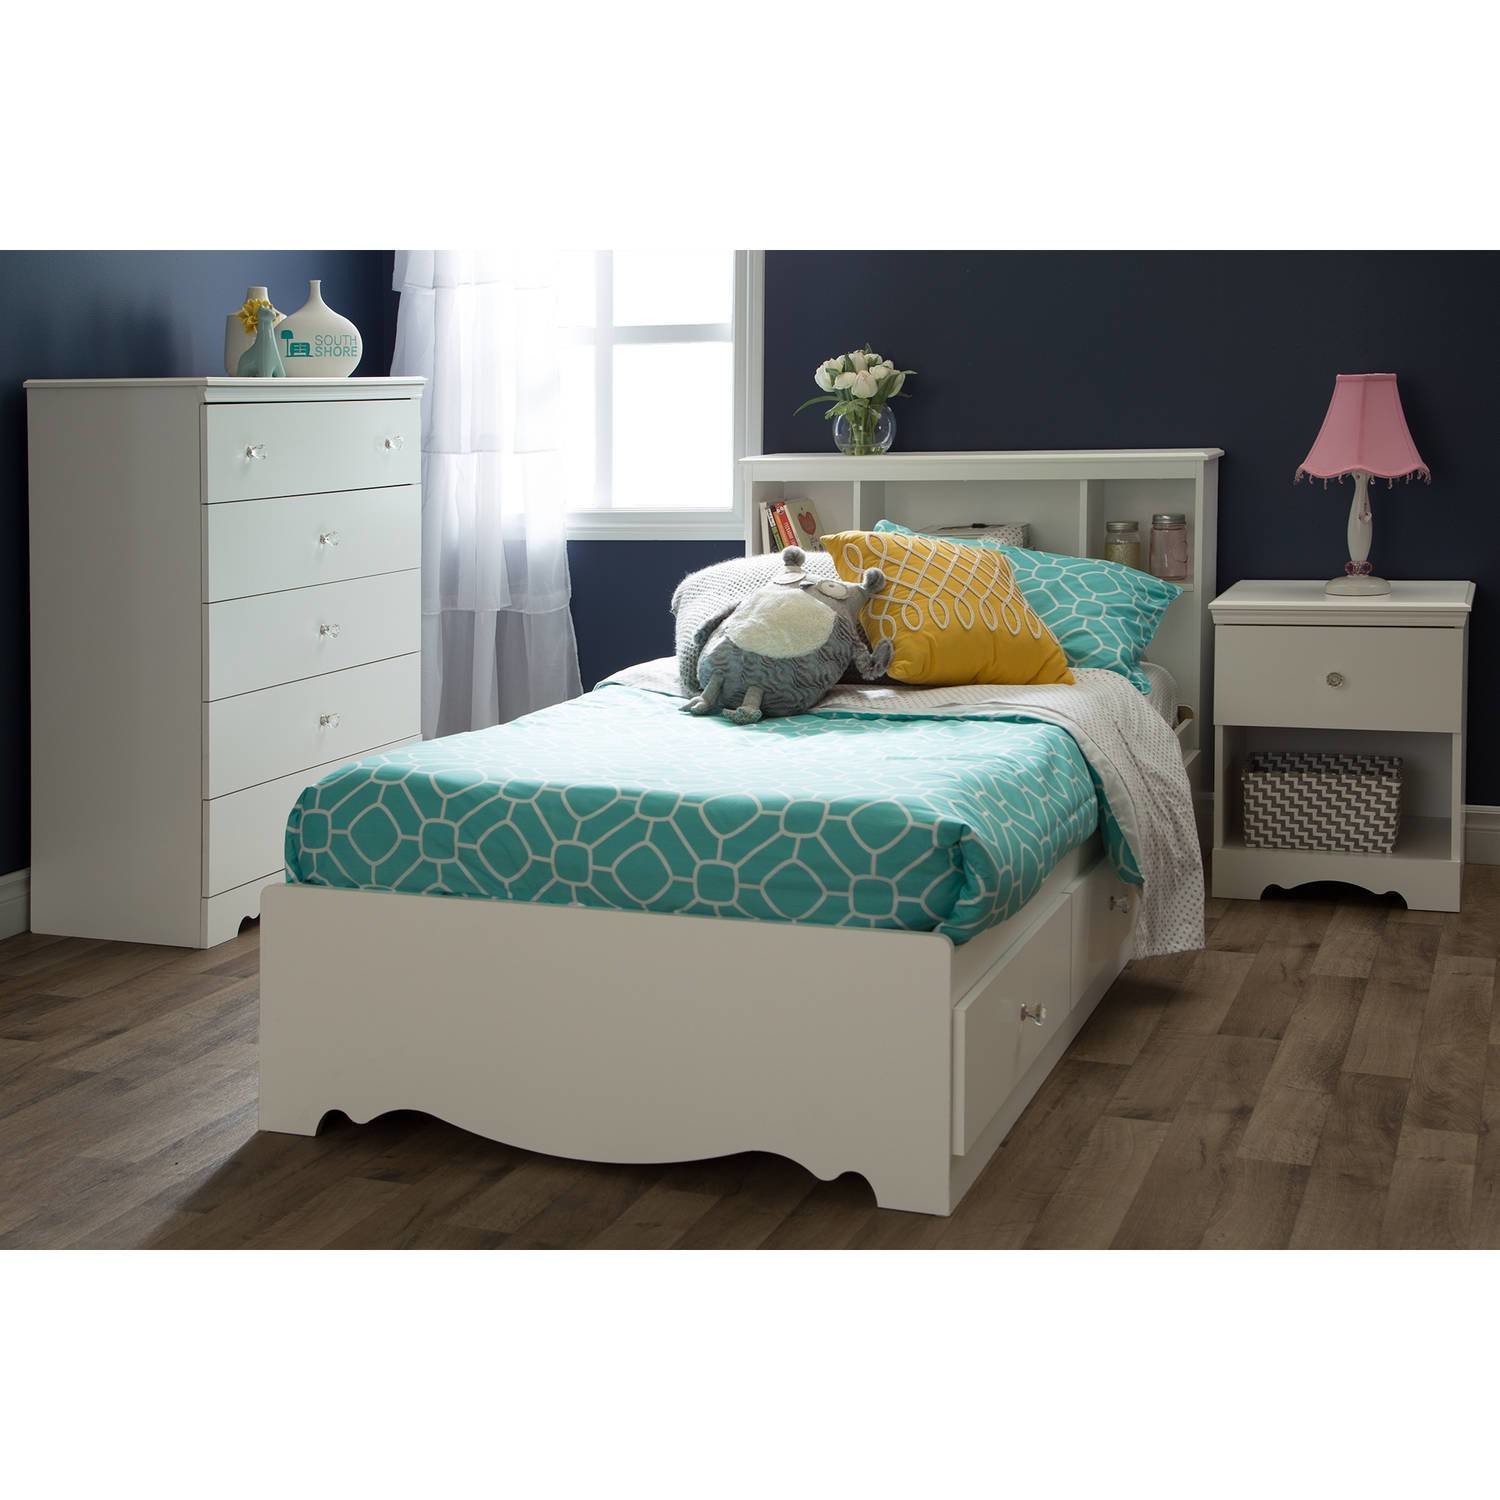 Best South Shore Crystal Kids Bedroom Furniture Collection With Pictures